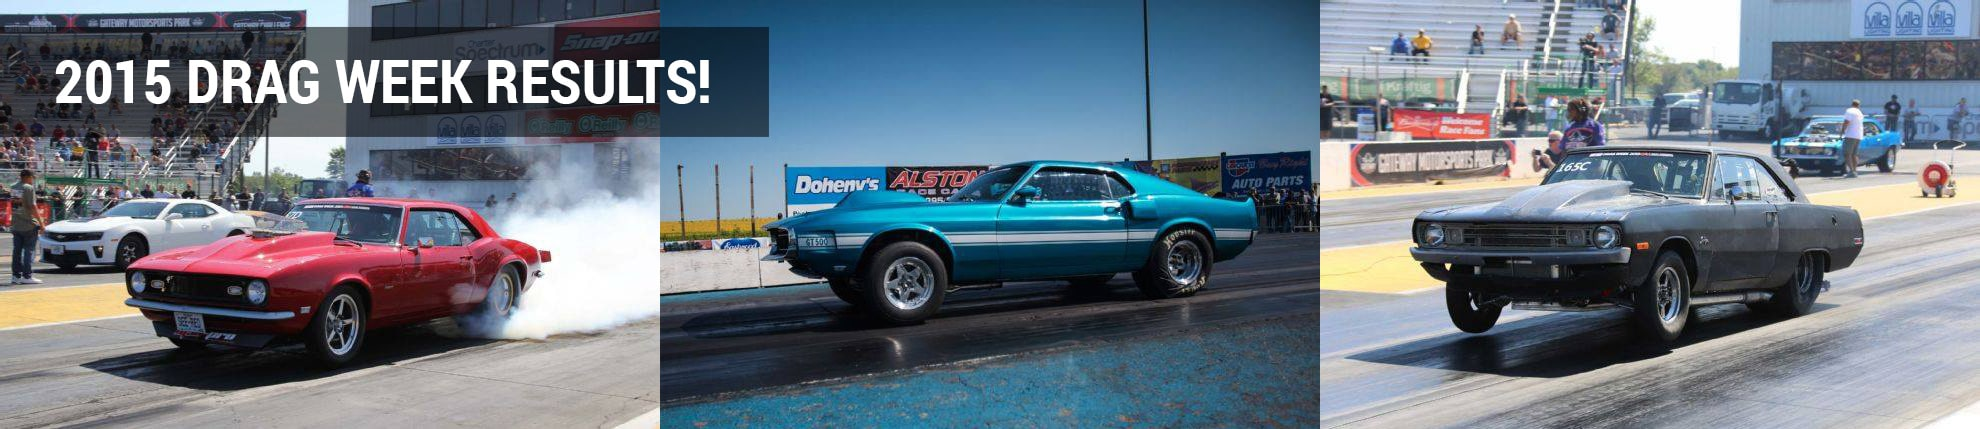 2015 Drag Week Results for MegaSquirt'd Cars & Drivers